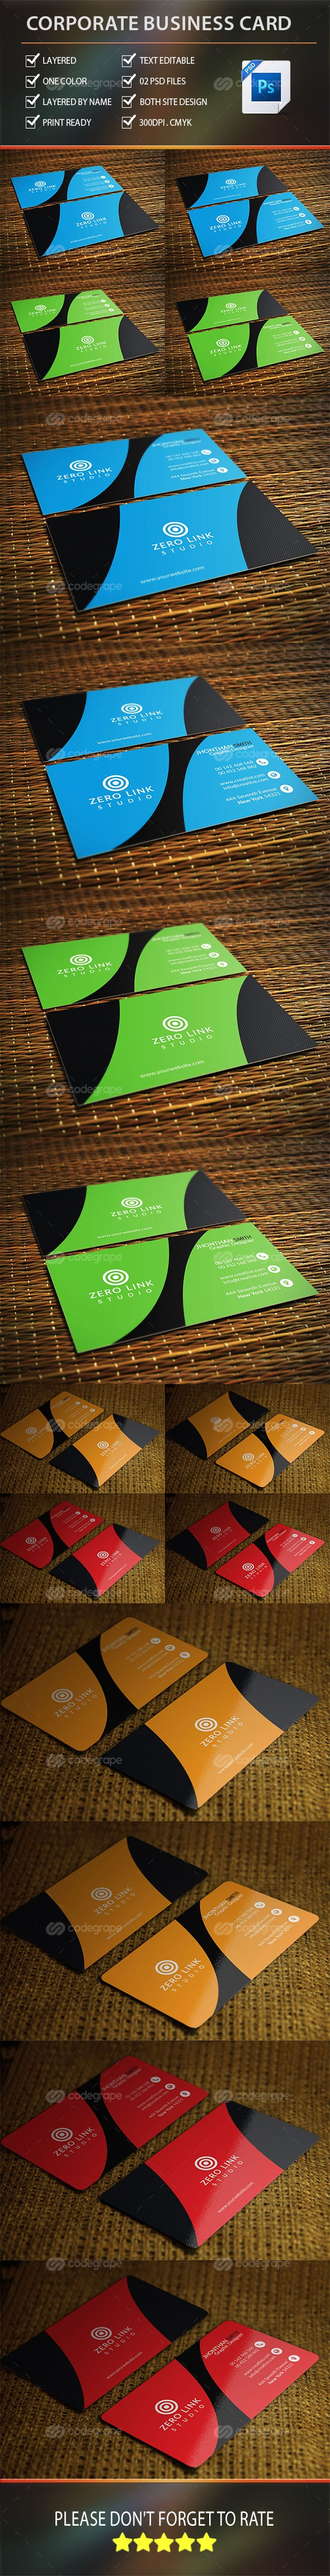 Corporate Business Card Vol-2.0